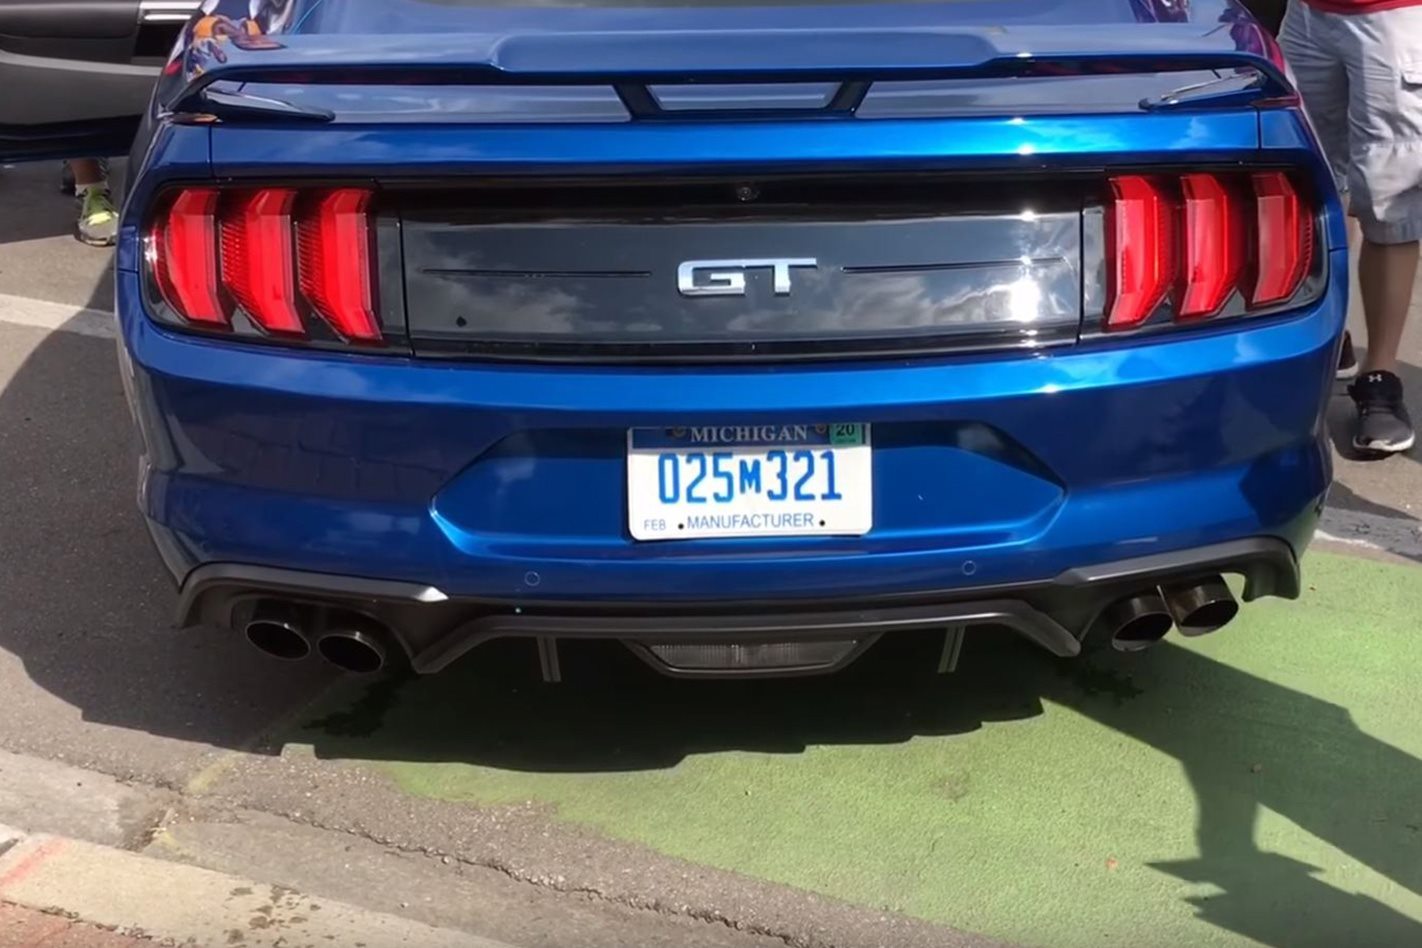 Ford Mustang Gt Exhaust Jpg